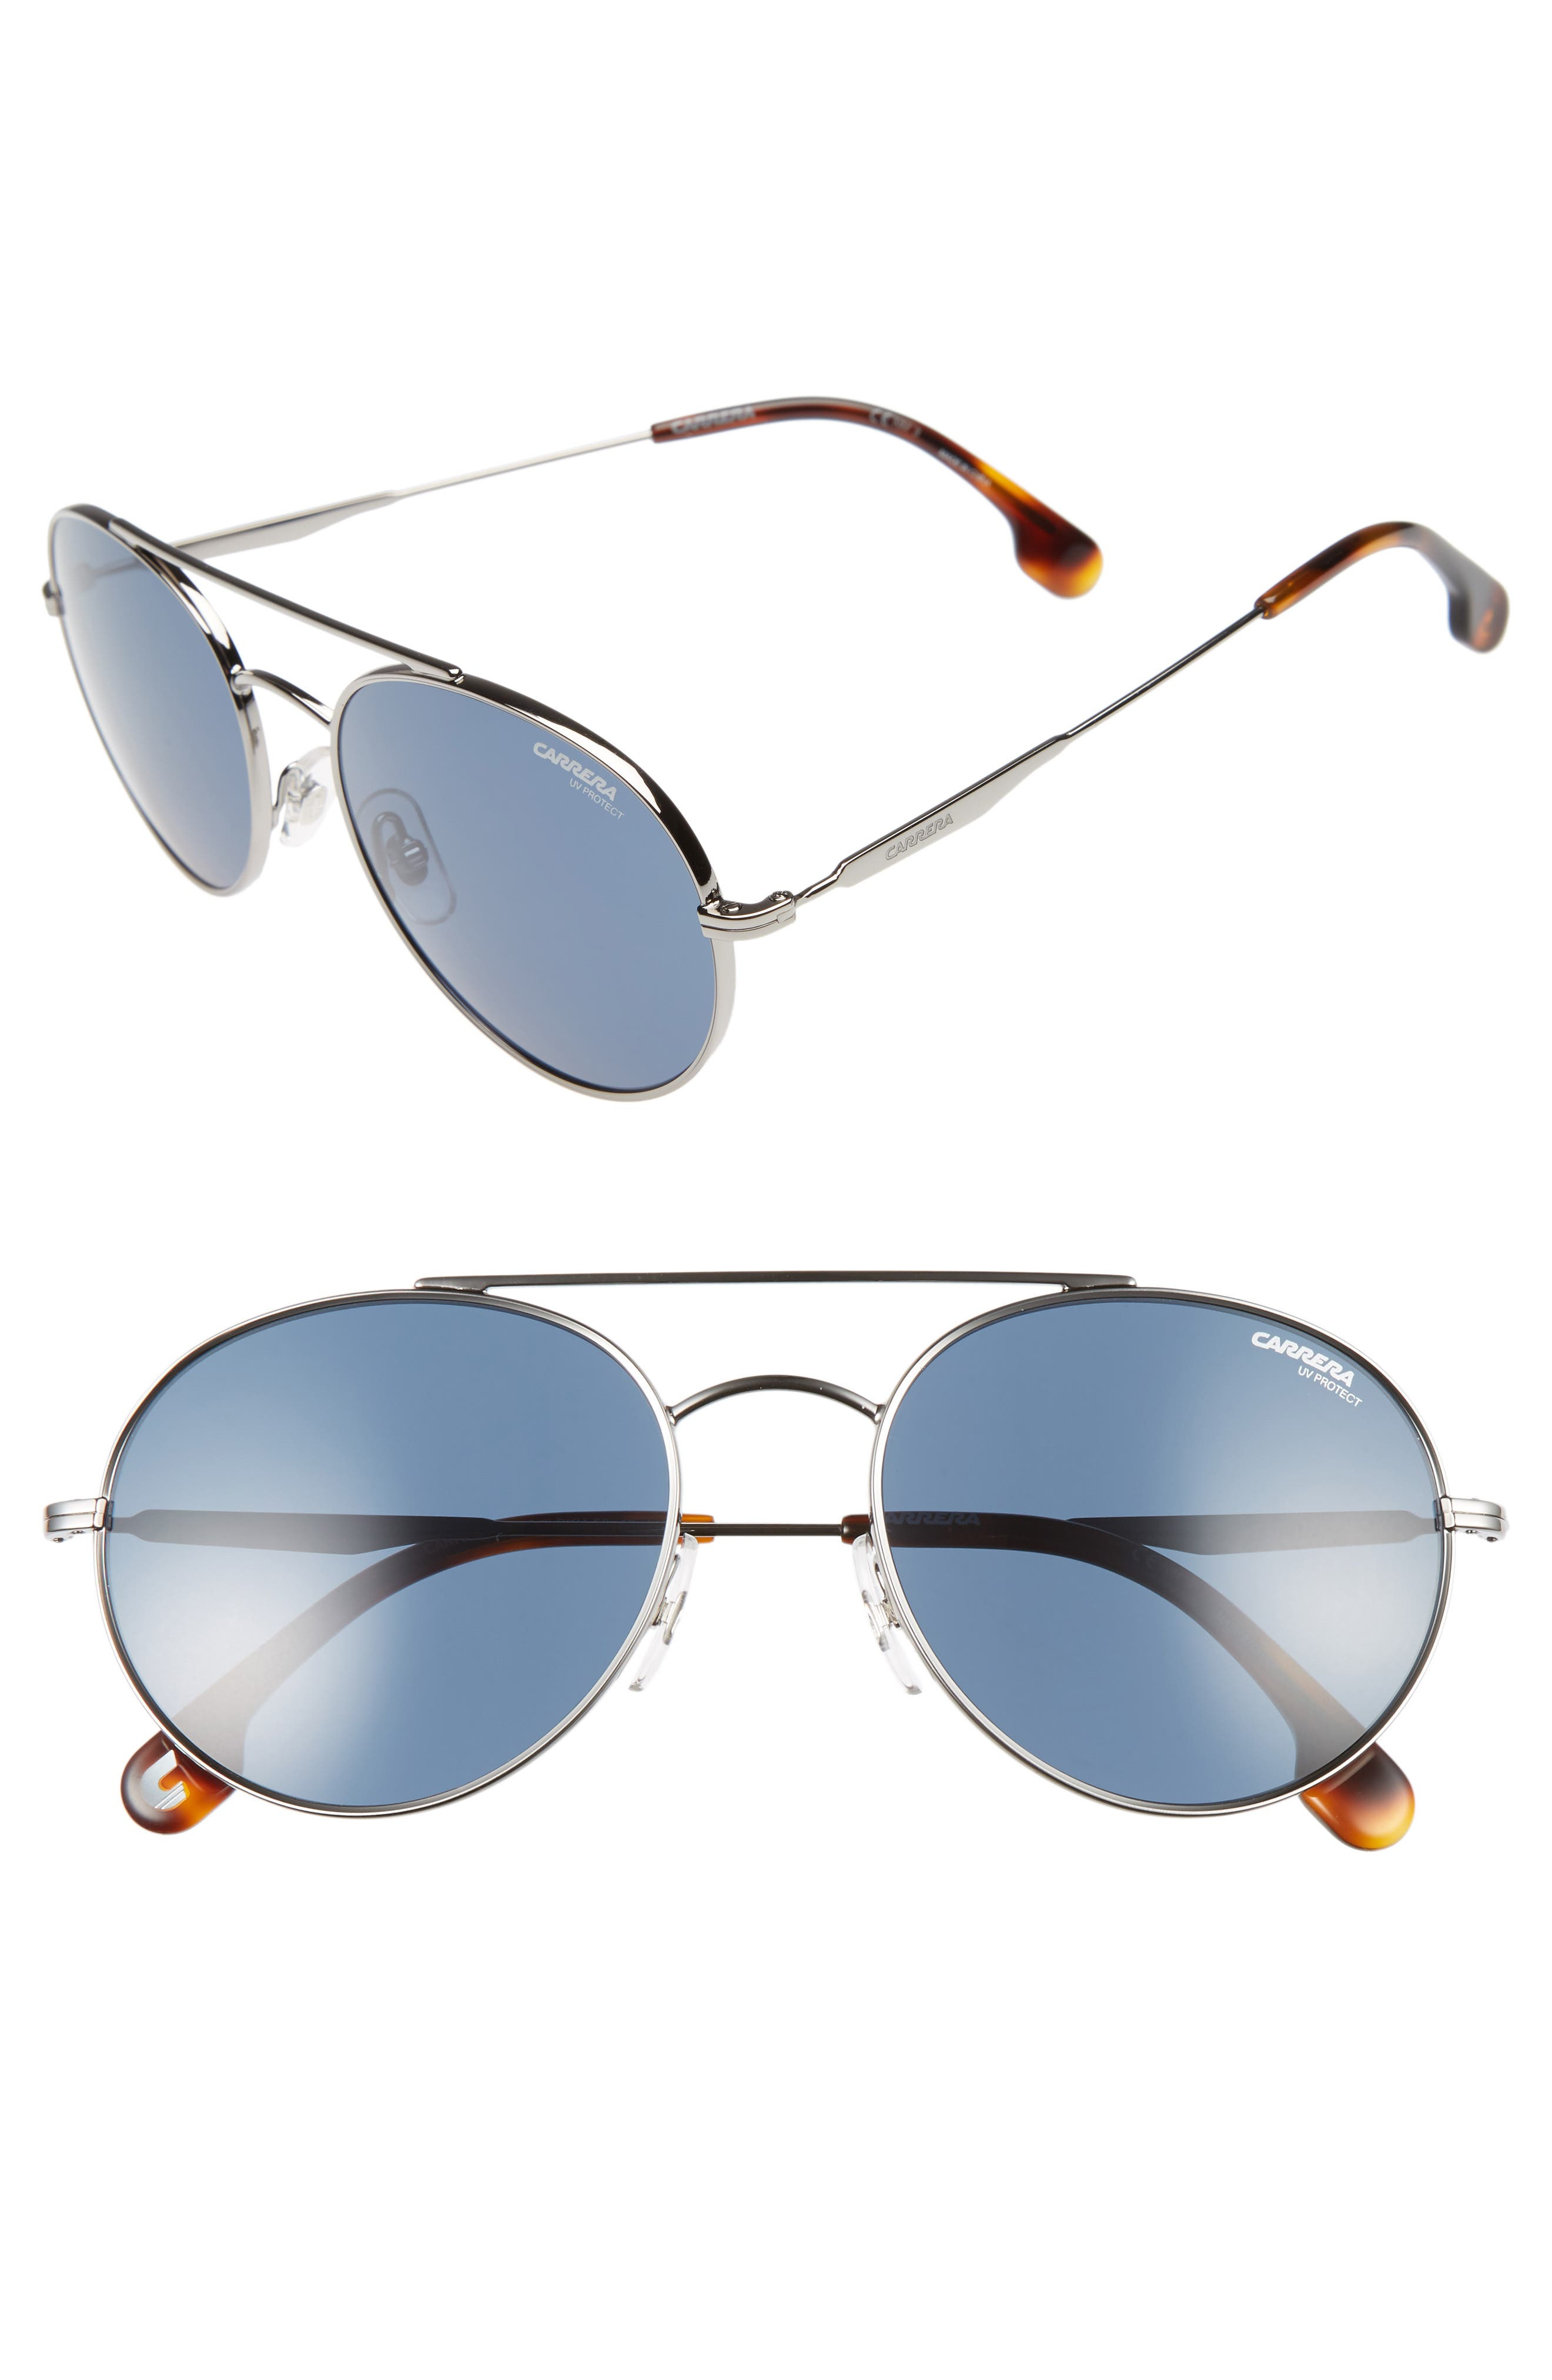 56mm Sunglasses,                         Main,                         color, Ruthenium/ Blue Avio